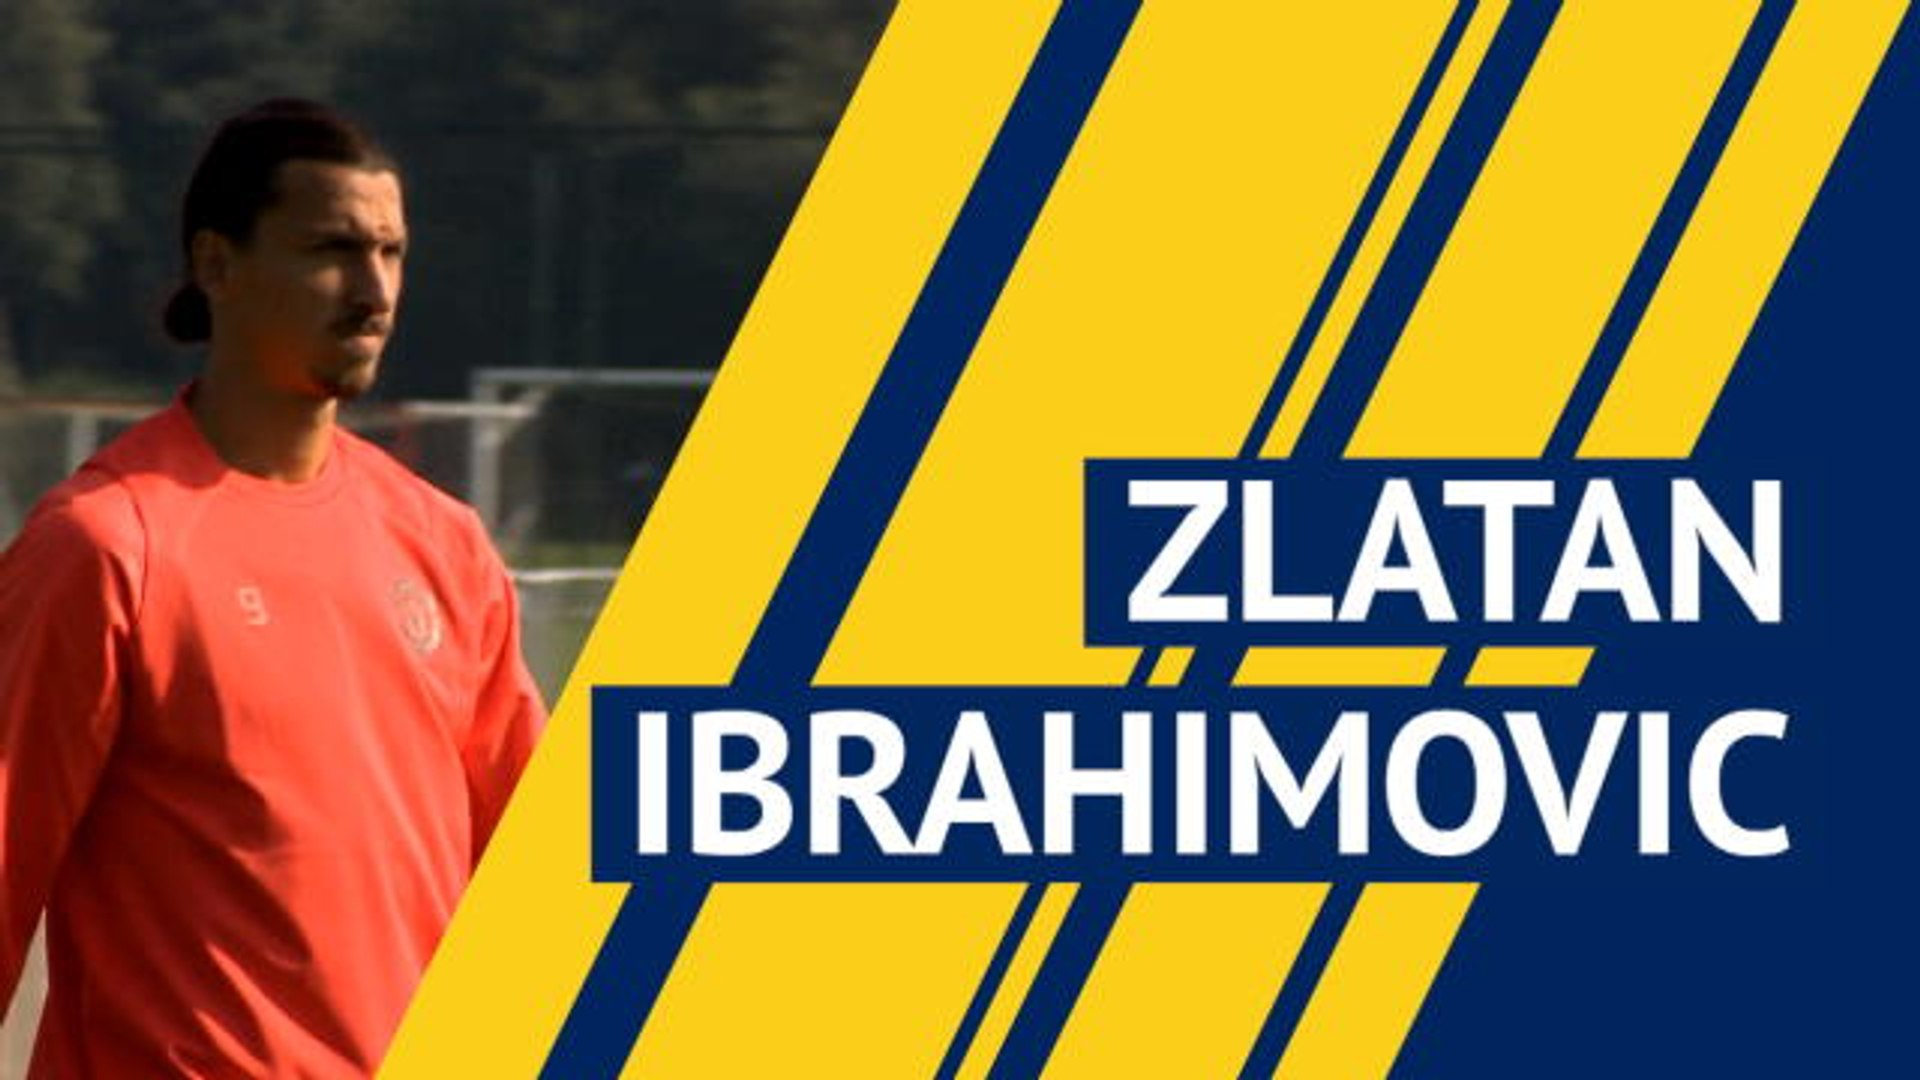 MLS - Zlatan Ibrahimovic, l'homme aux 500 buts